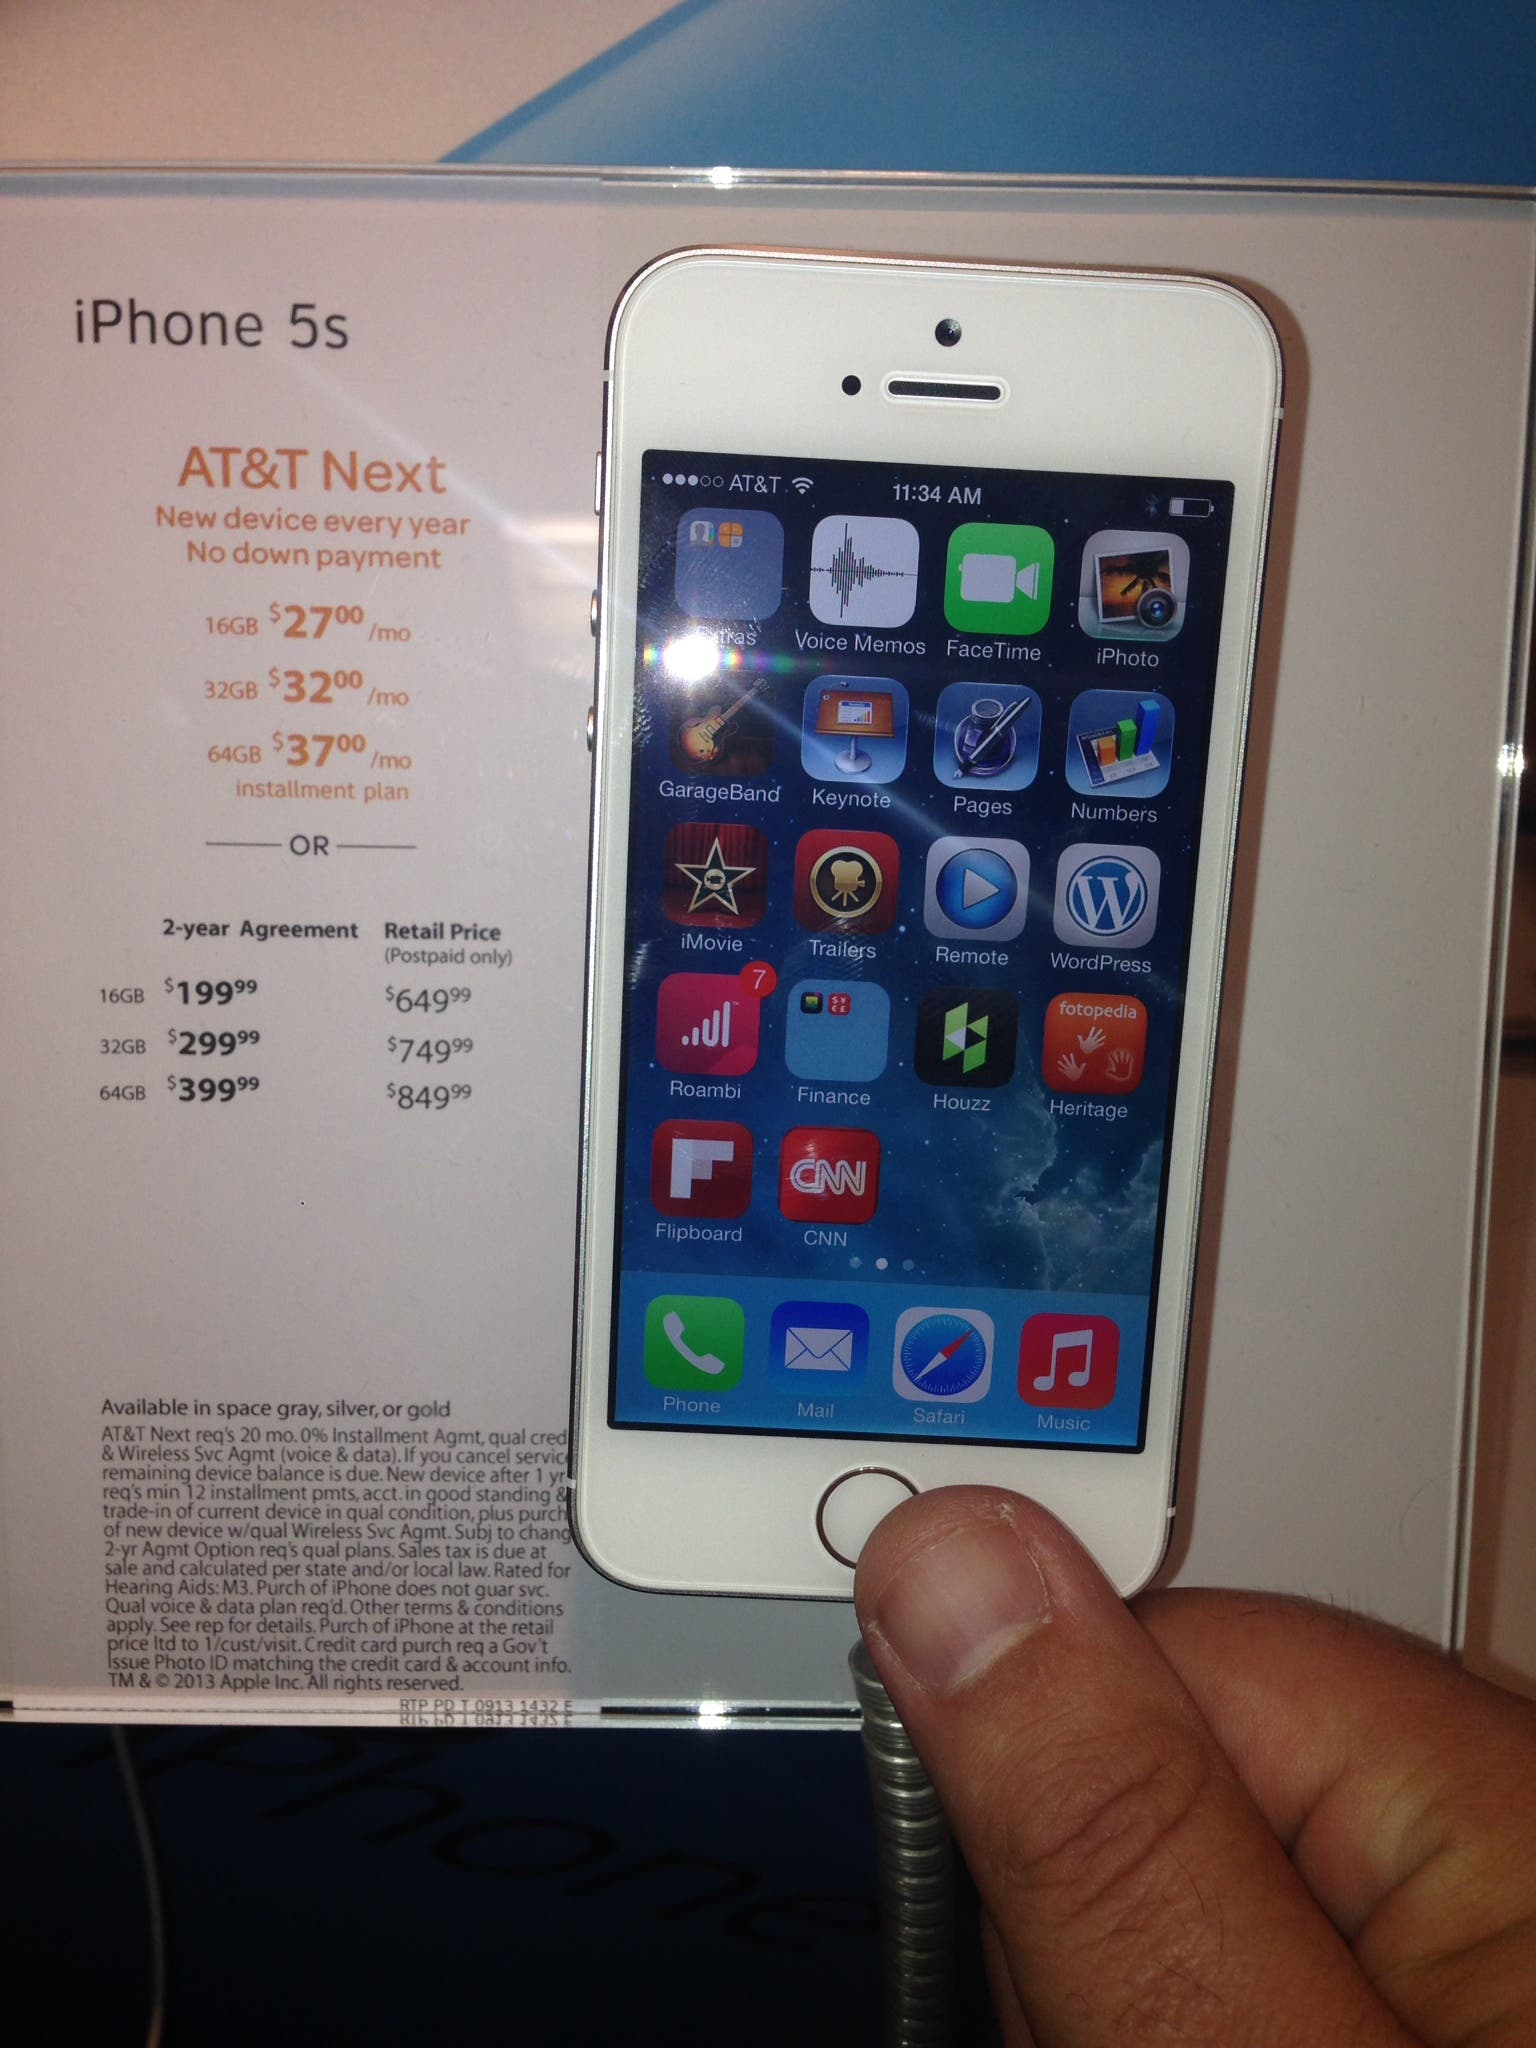 iPhone 5s with fingerprint reader